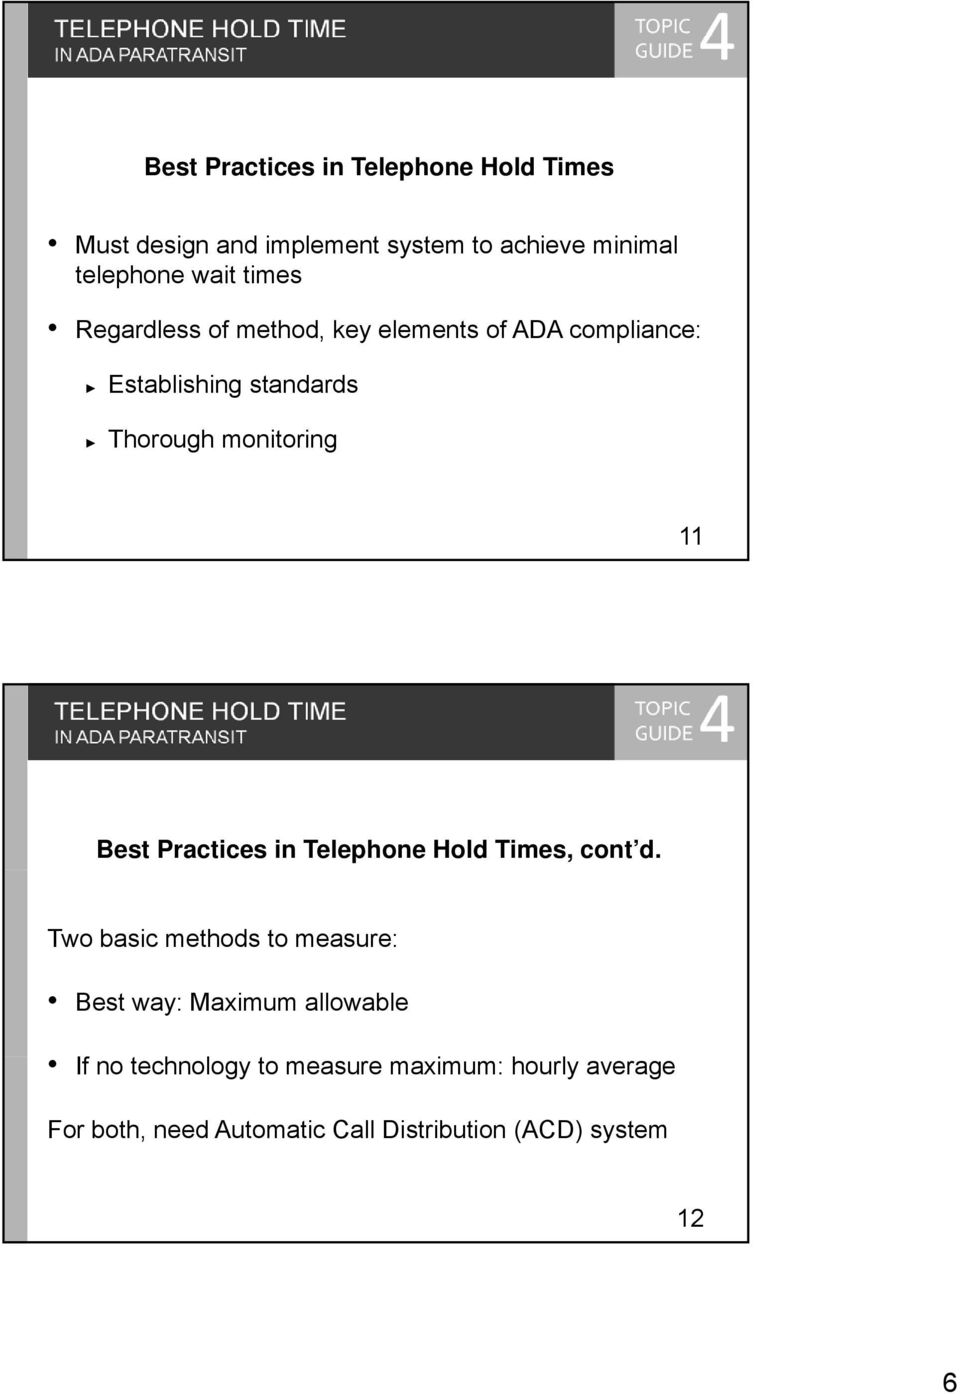 Best Practices in Telephone Hold Times, cont d.